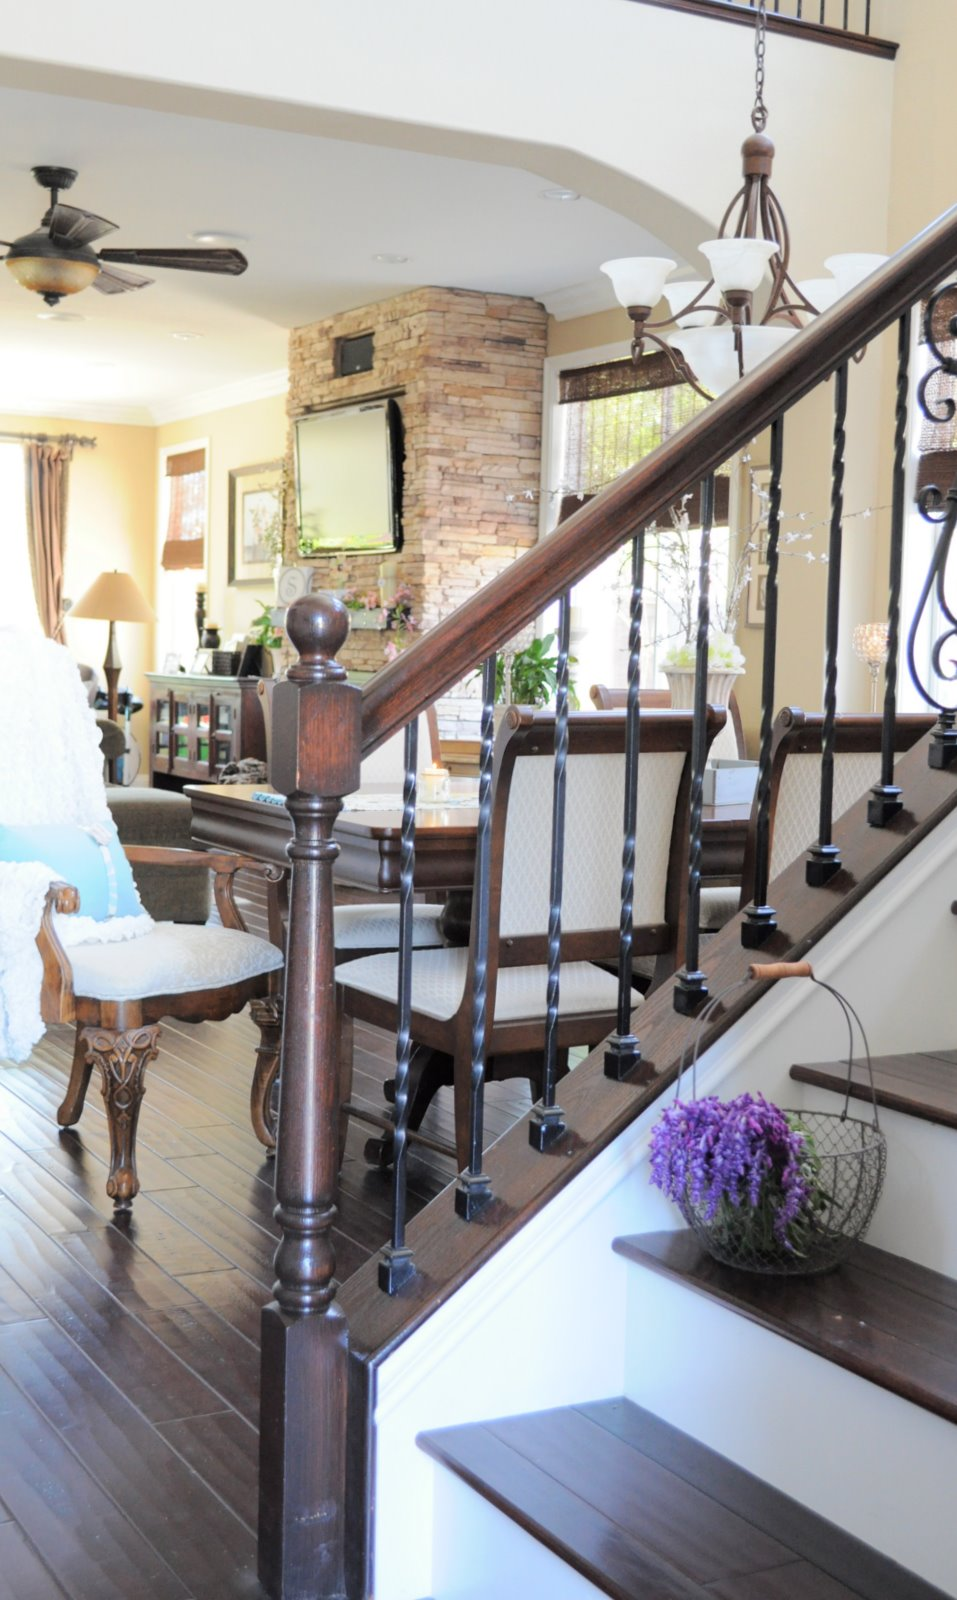 My Foyer Staircase Reveal : Foyer reveal my uncommon slice of suburbia